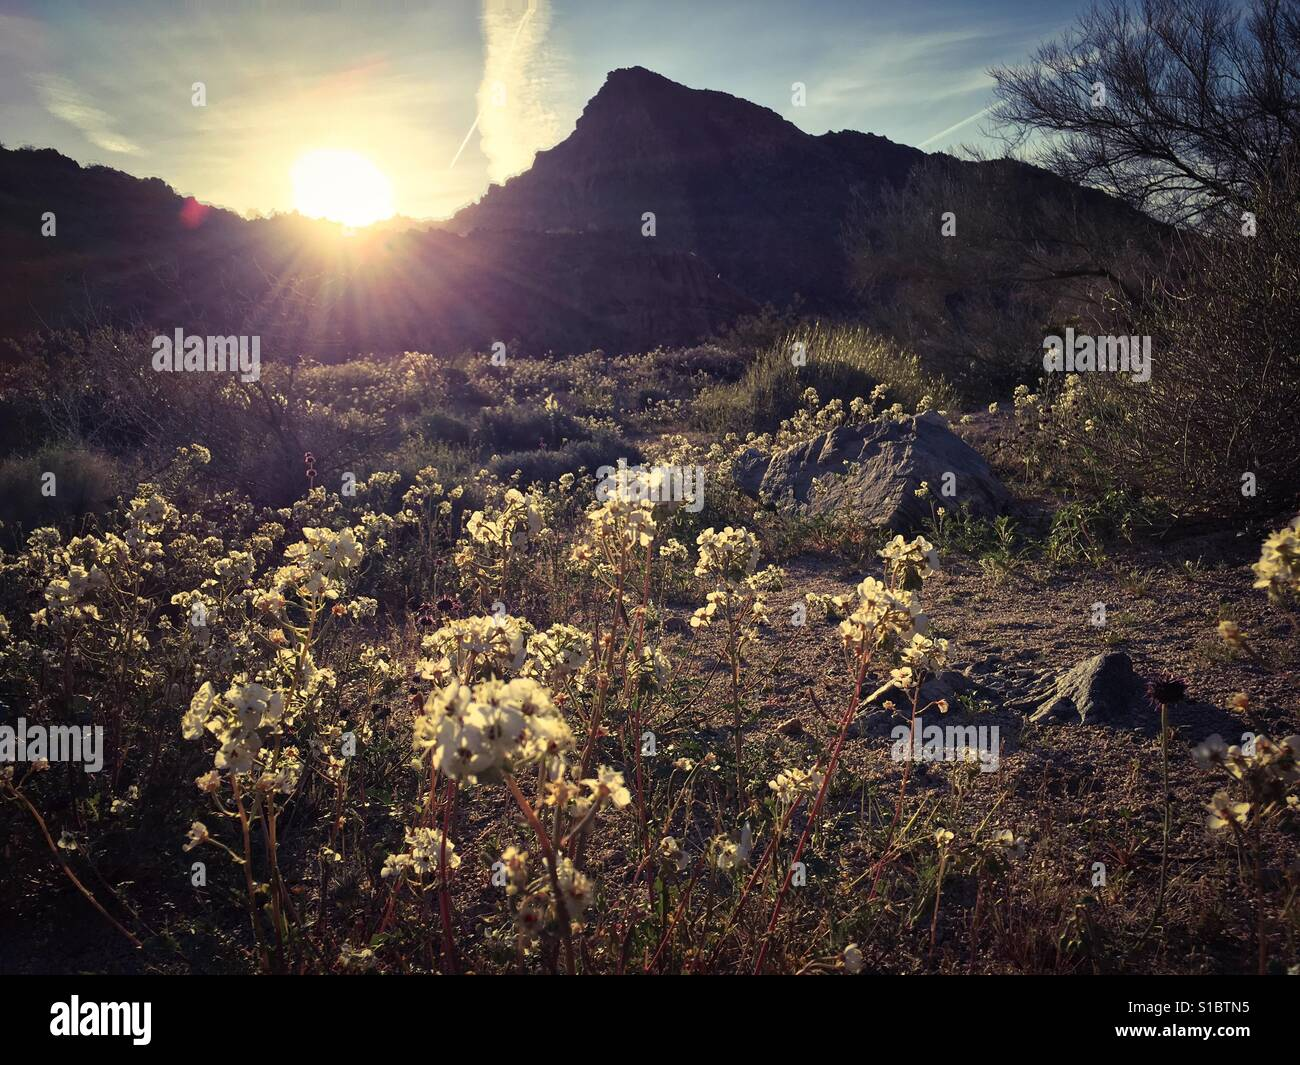 March 18, 2017 A superbloom of wildflowers at sunrise after a rainy winter at Joshua Tree National Park, Southern - Stock Image